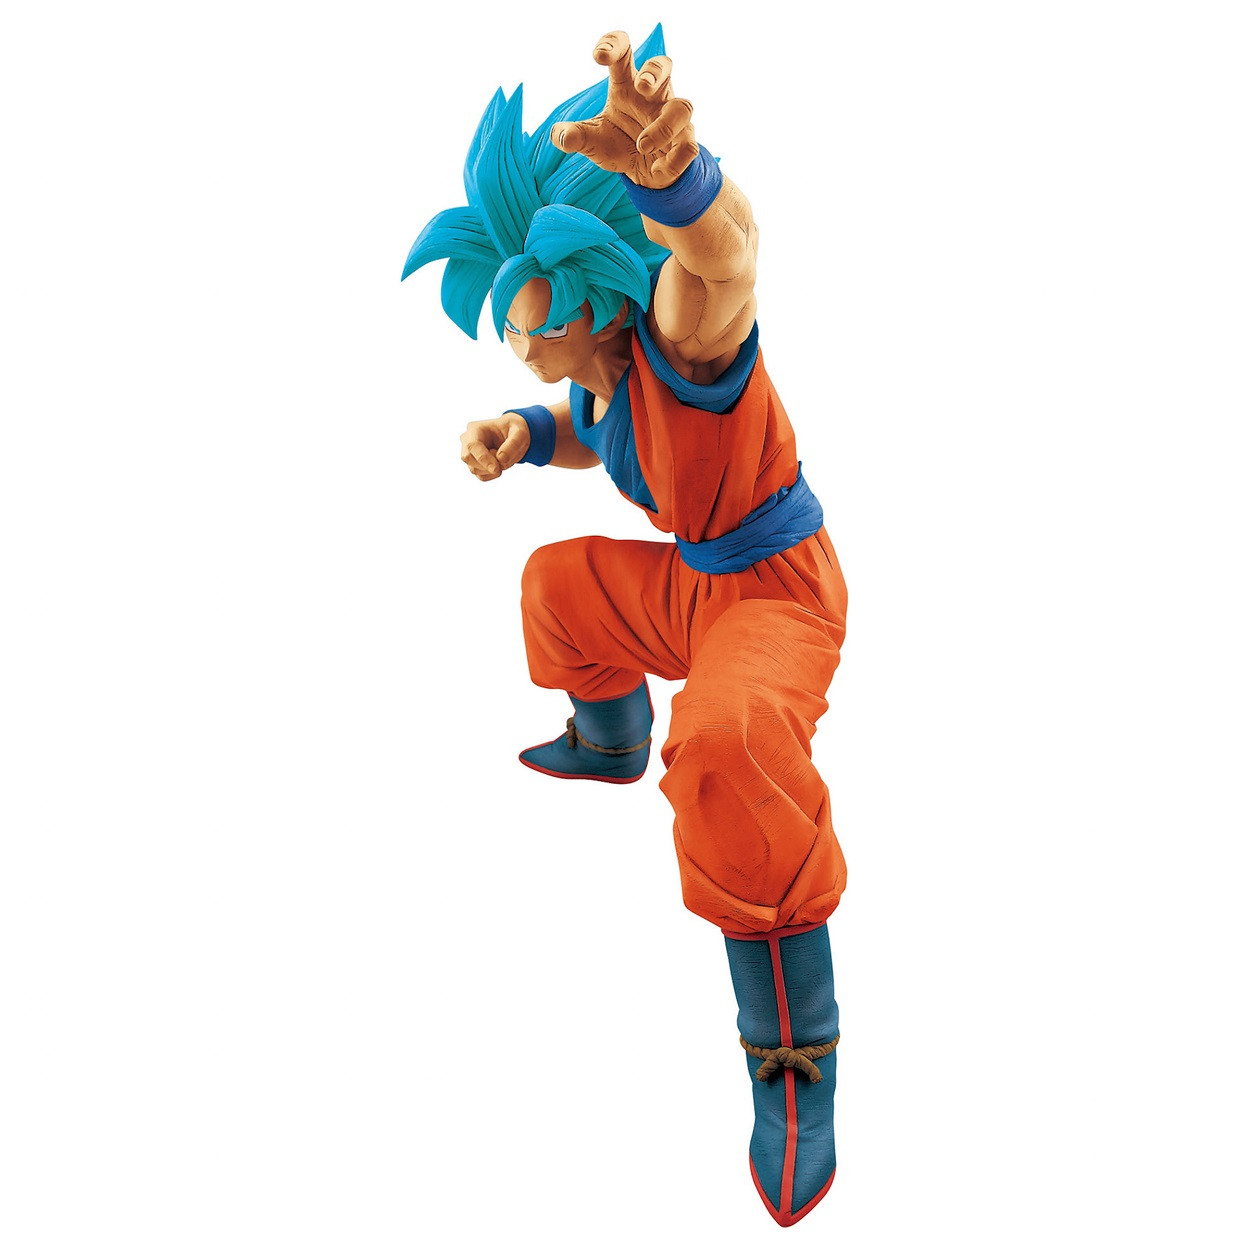 Dragon Ball Super Super Saiyan God Super Saiyan Goku Large 9.4 Inch PVC Collectible Figure